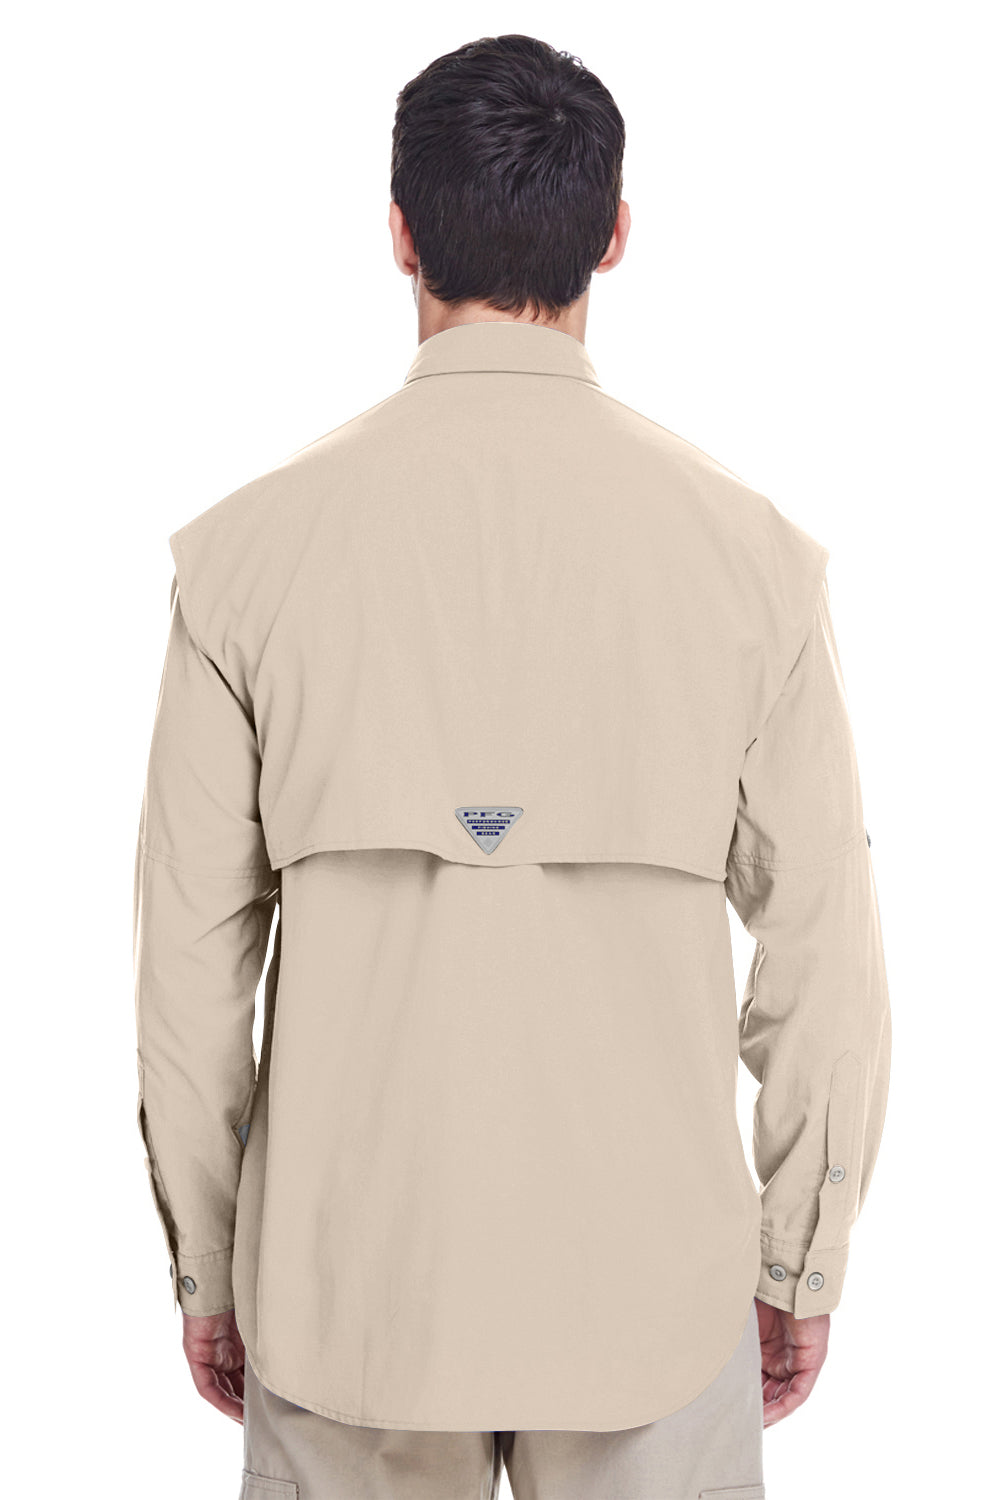 Columbia 7048 Mens Bahama II Moisture Wicking Long Sleeve Button Down Shirt w/ Double Pockets Fossil Brown Back